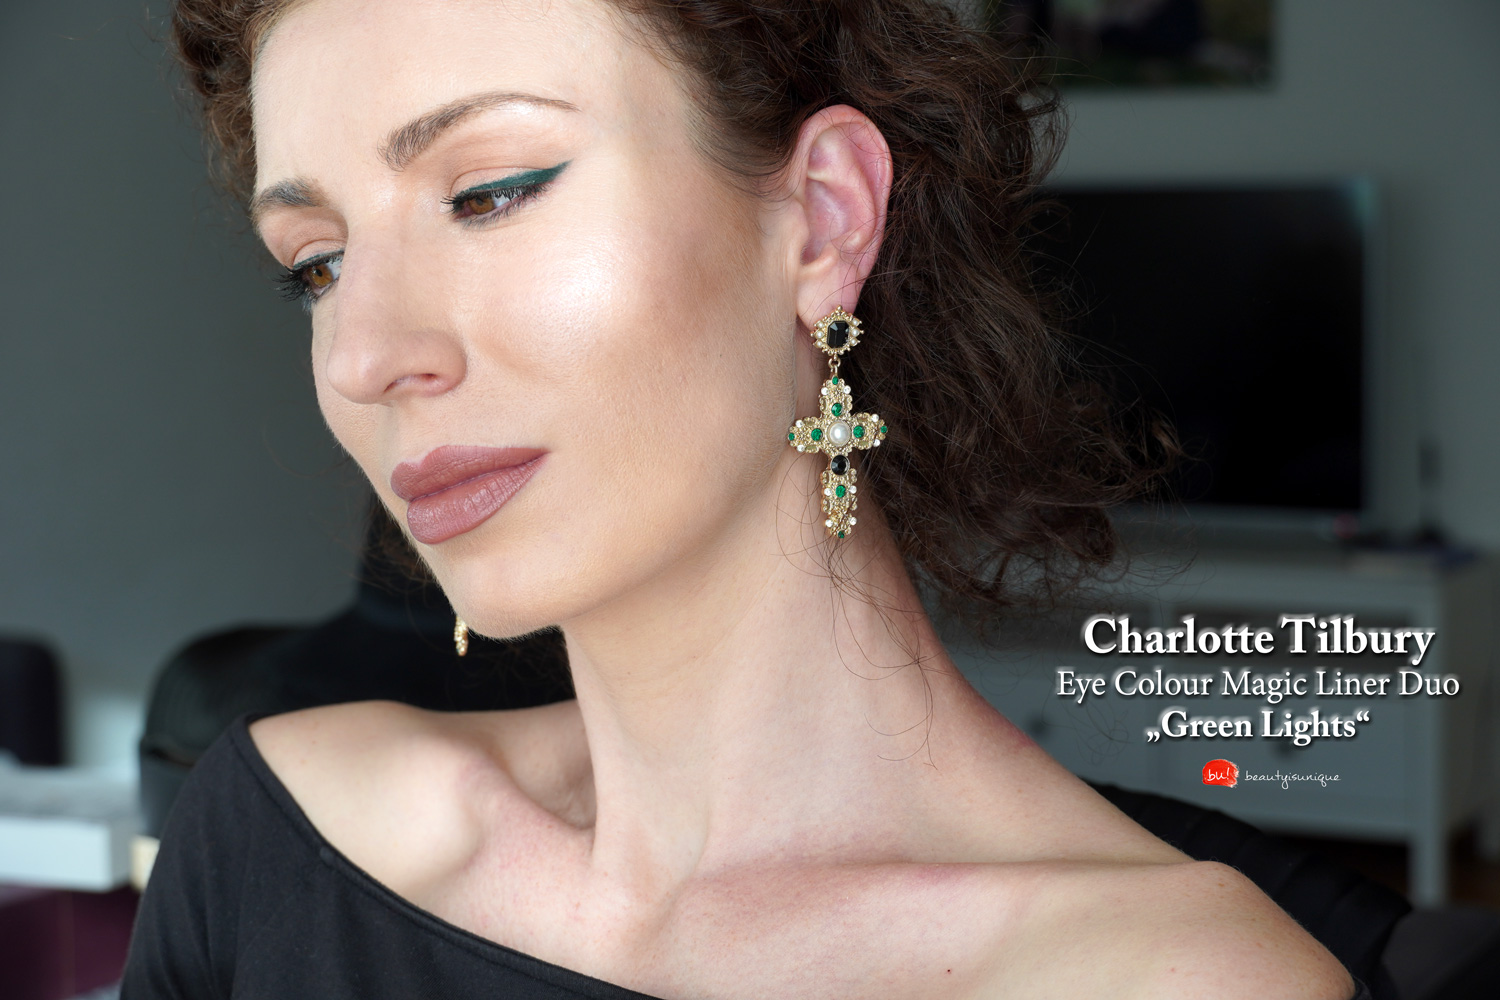 Charlotte-tilbury-green-lights-eye-colour-magic-liner-duo-swatches